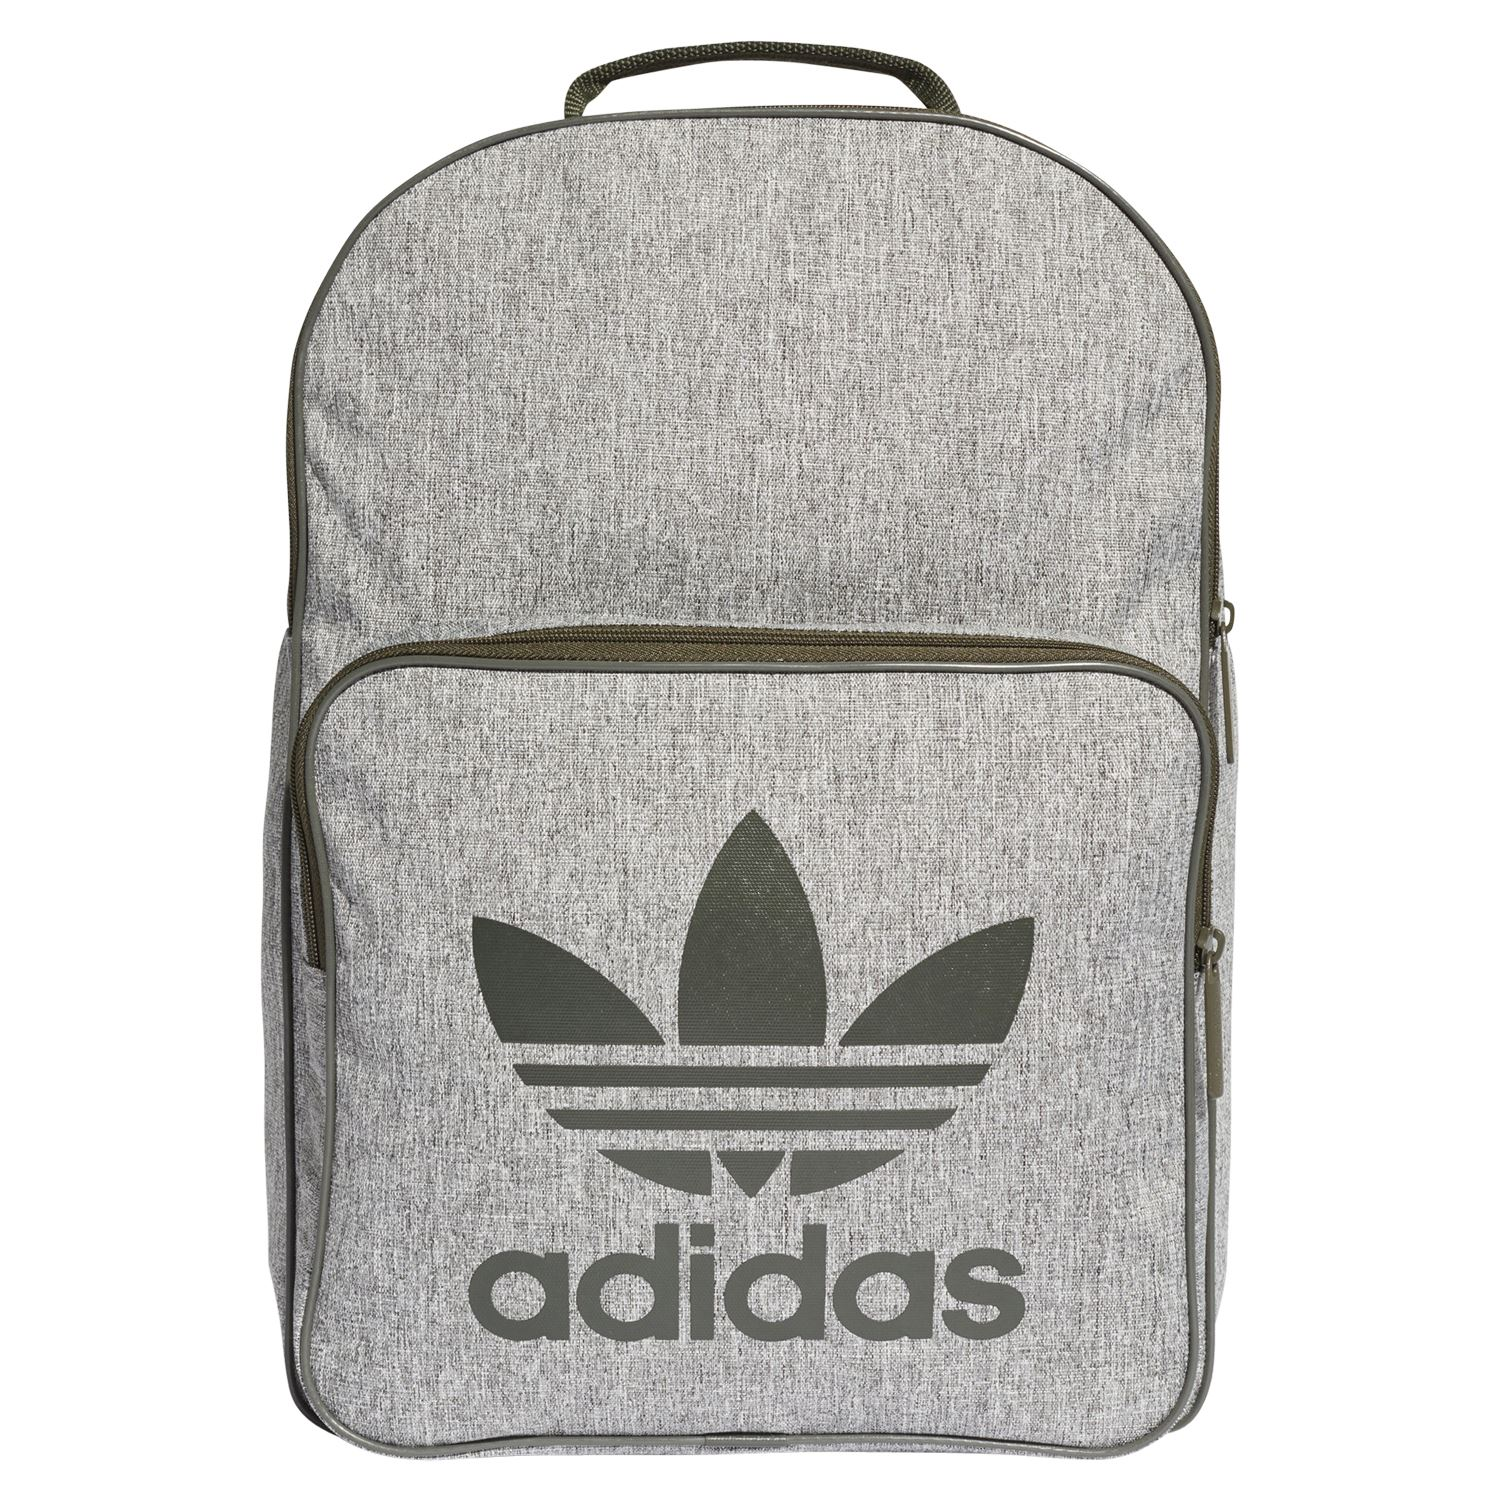 a361e0a60 Details about adidas ORIGINALS CLASSIC TREFOIL BACKPACK GREY GREEN BACK TO  SCHOOL COLLEGE